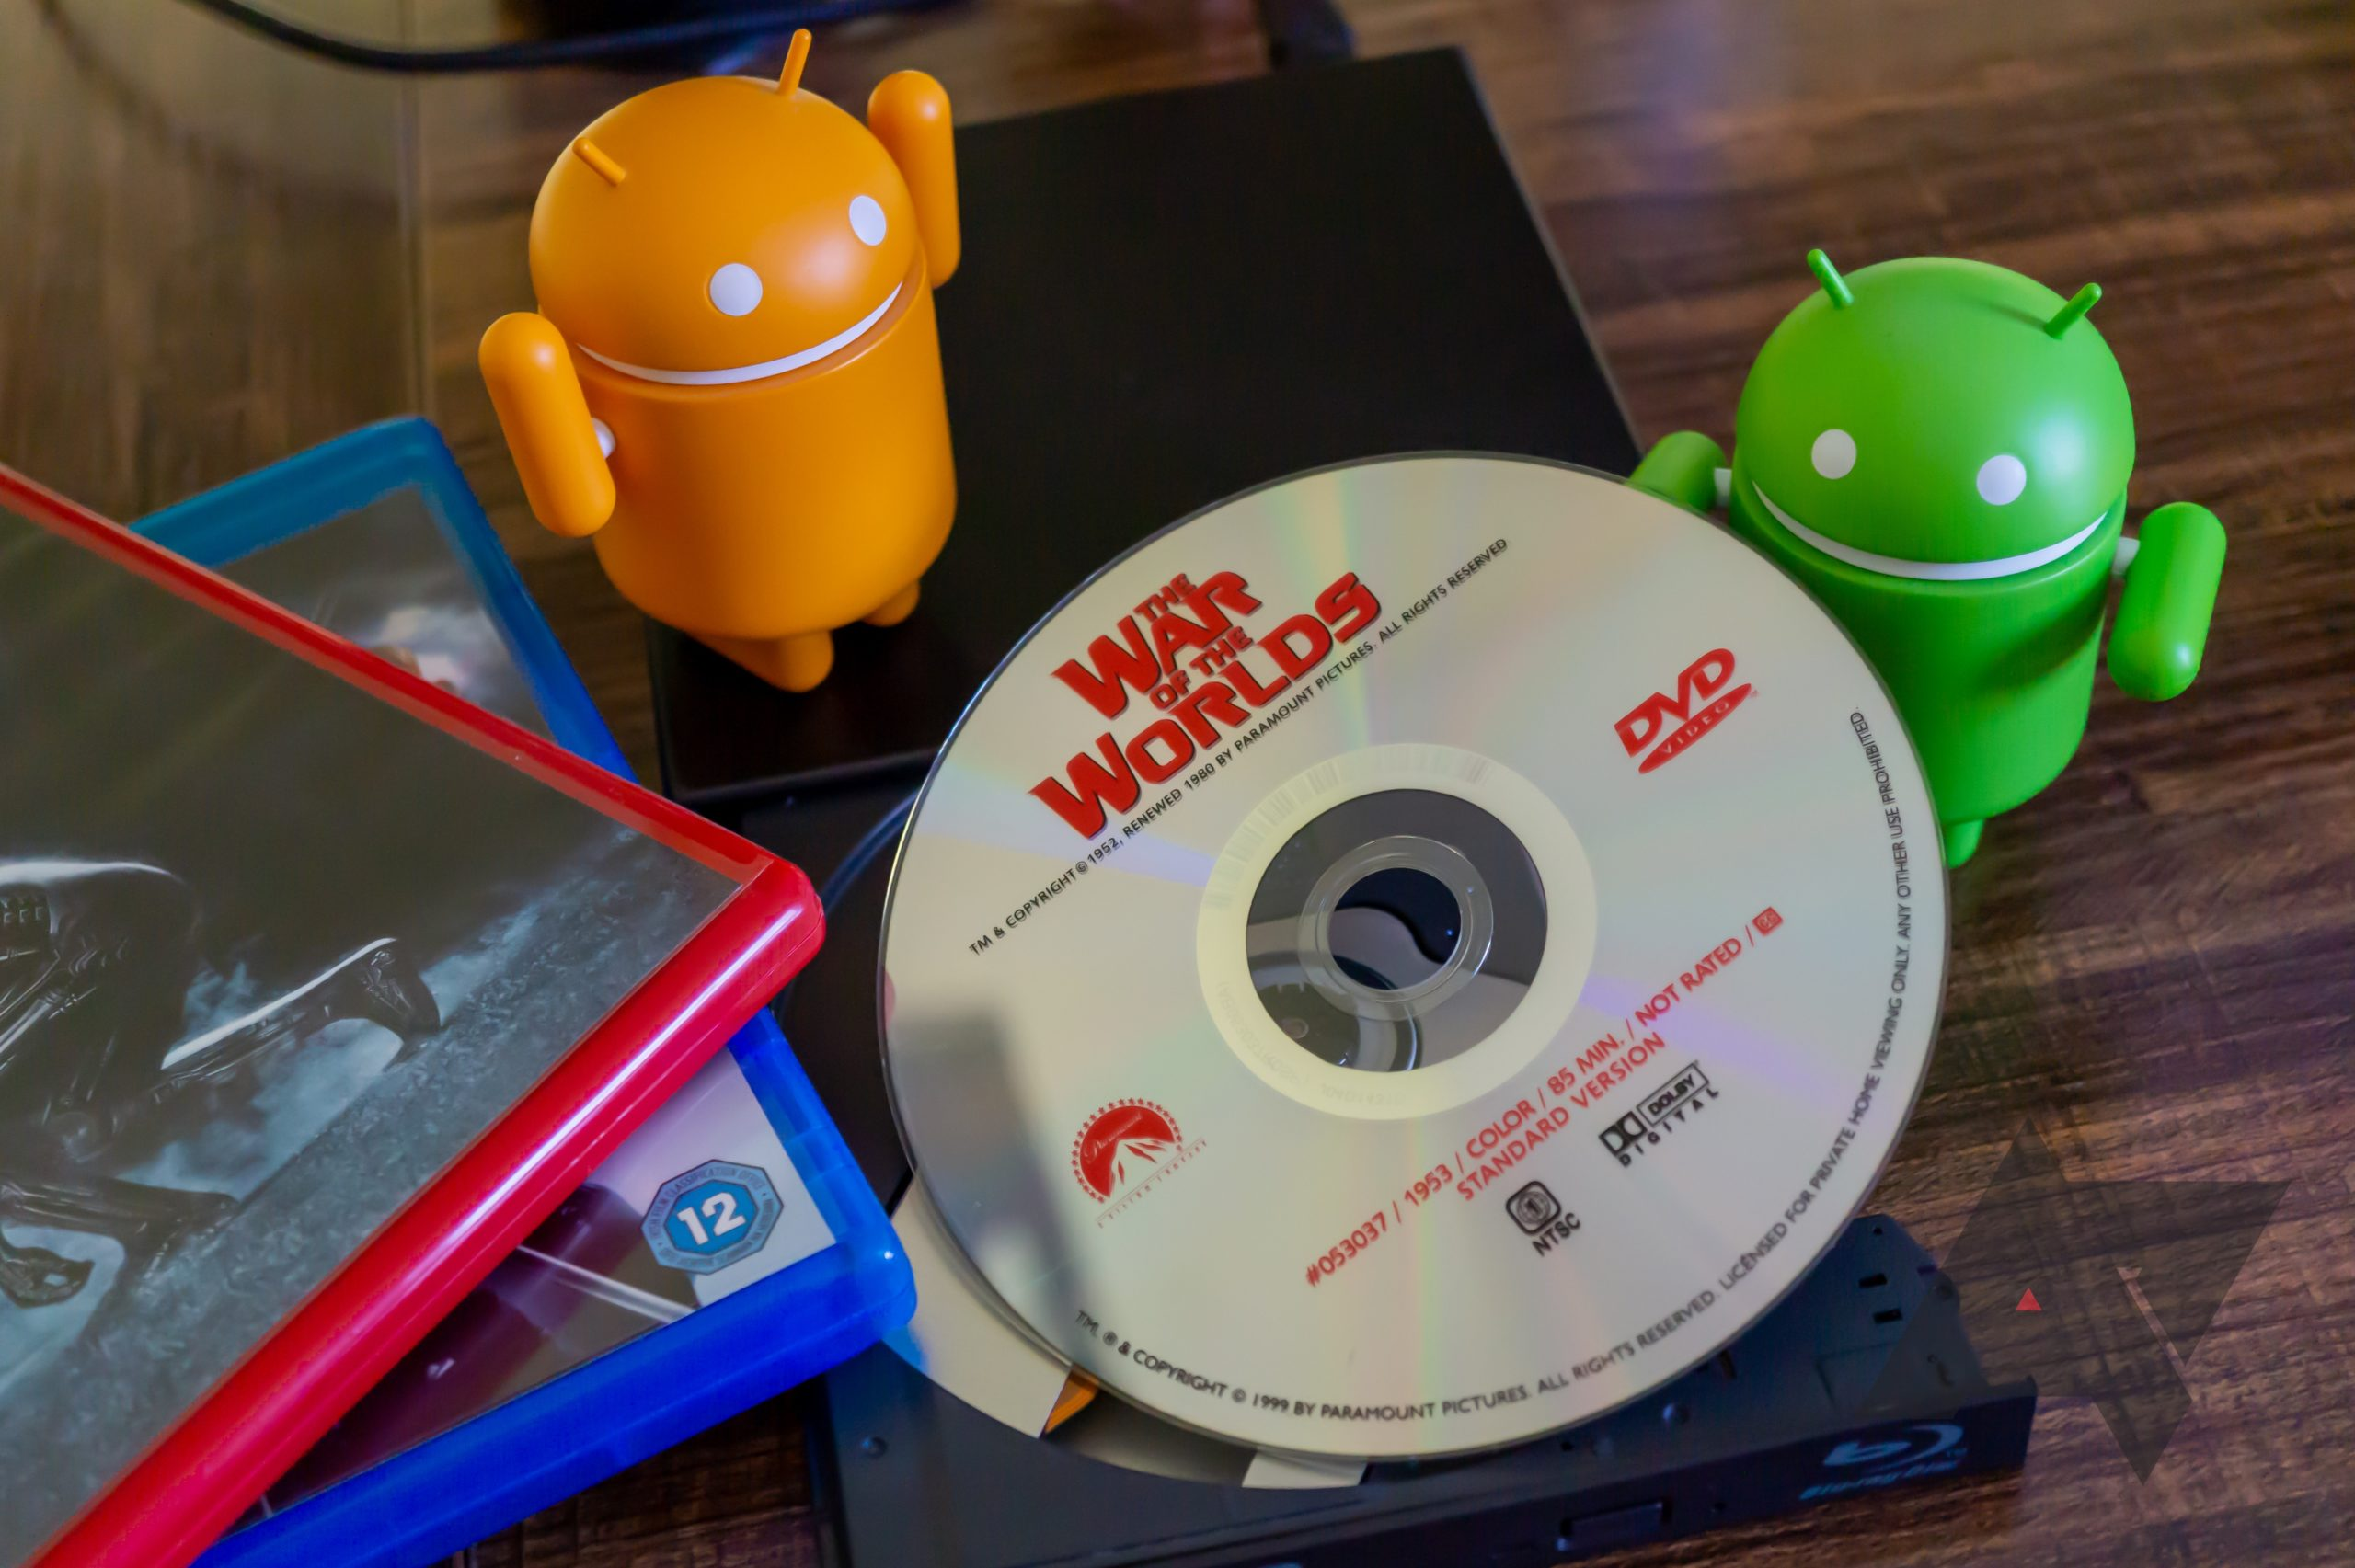 How to rip your movie collection to watch anywhere